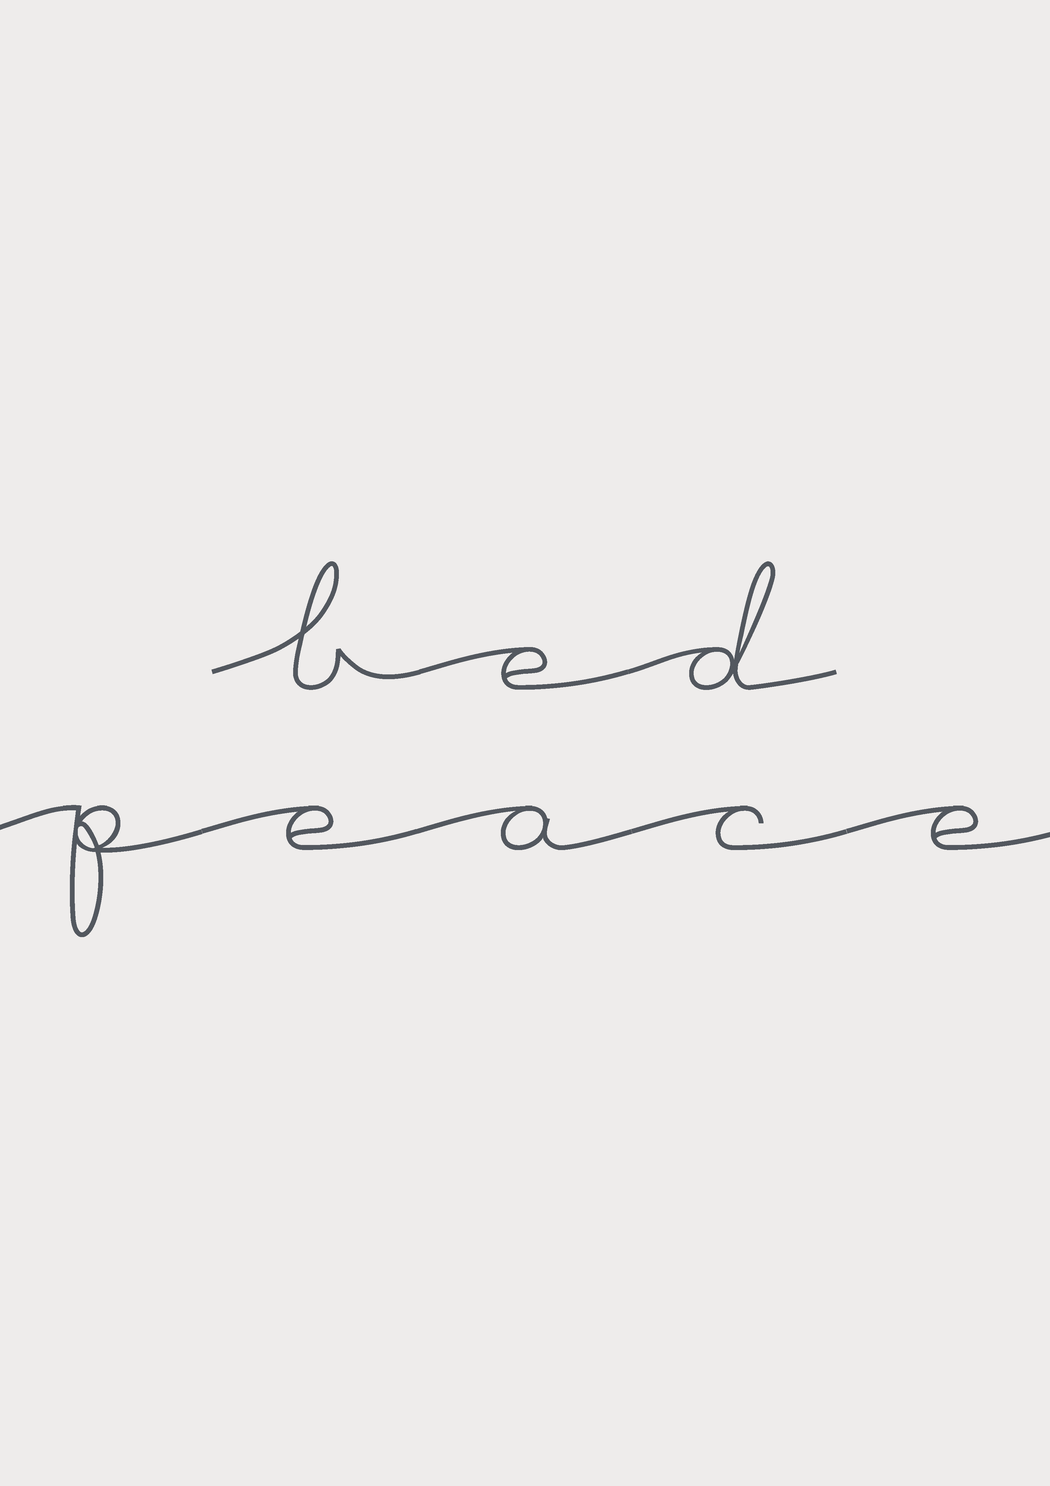 Bed Peace Print Limited Edition by T + K Studio WAS £30 - Tea and Kate